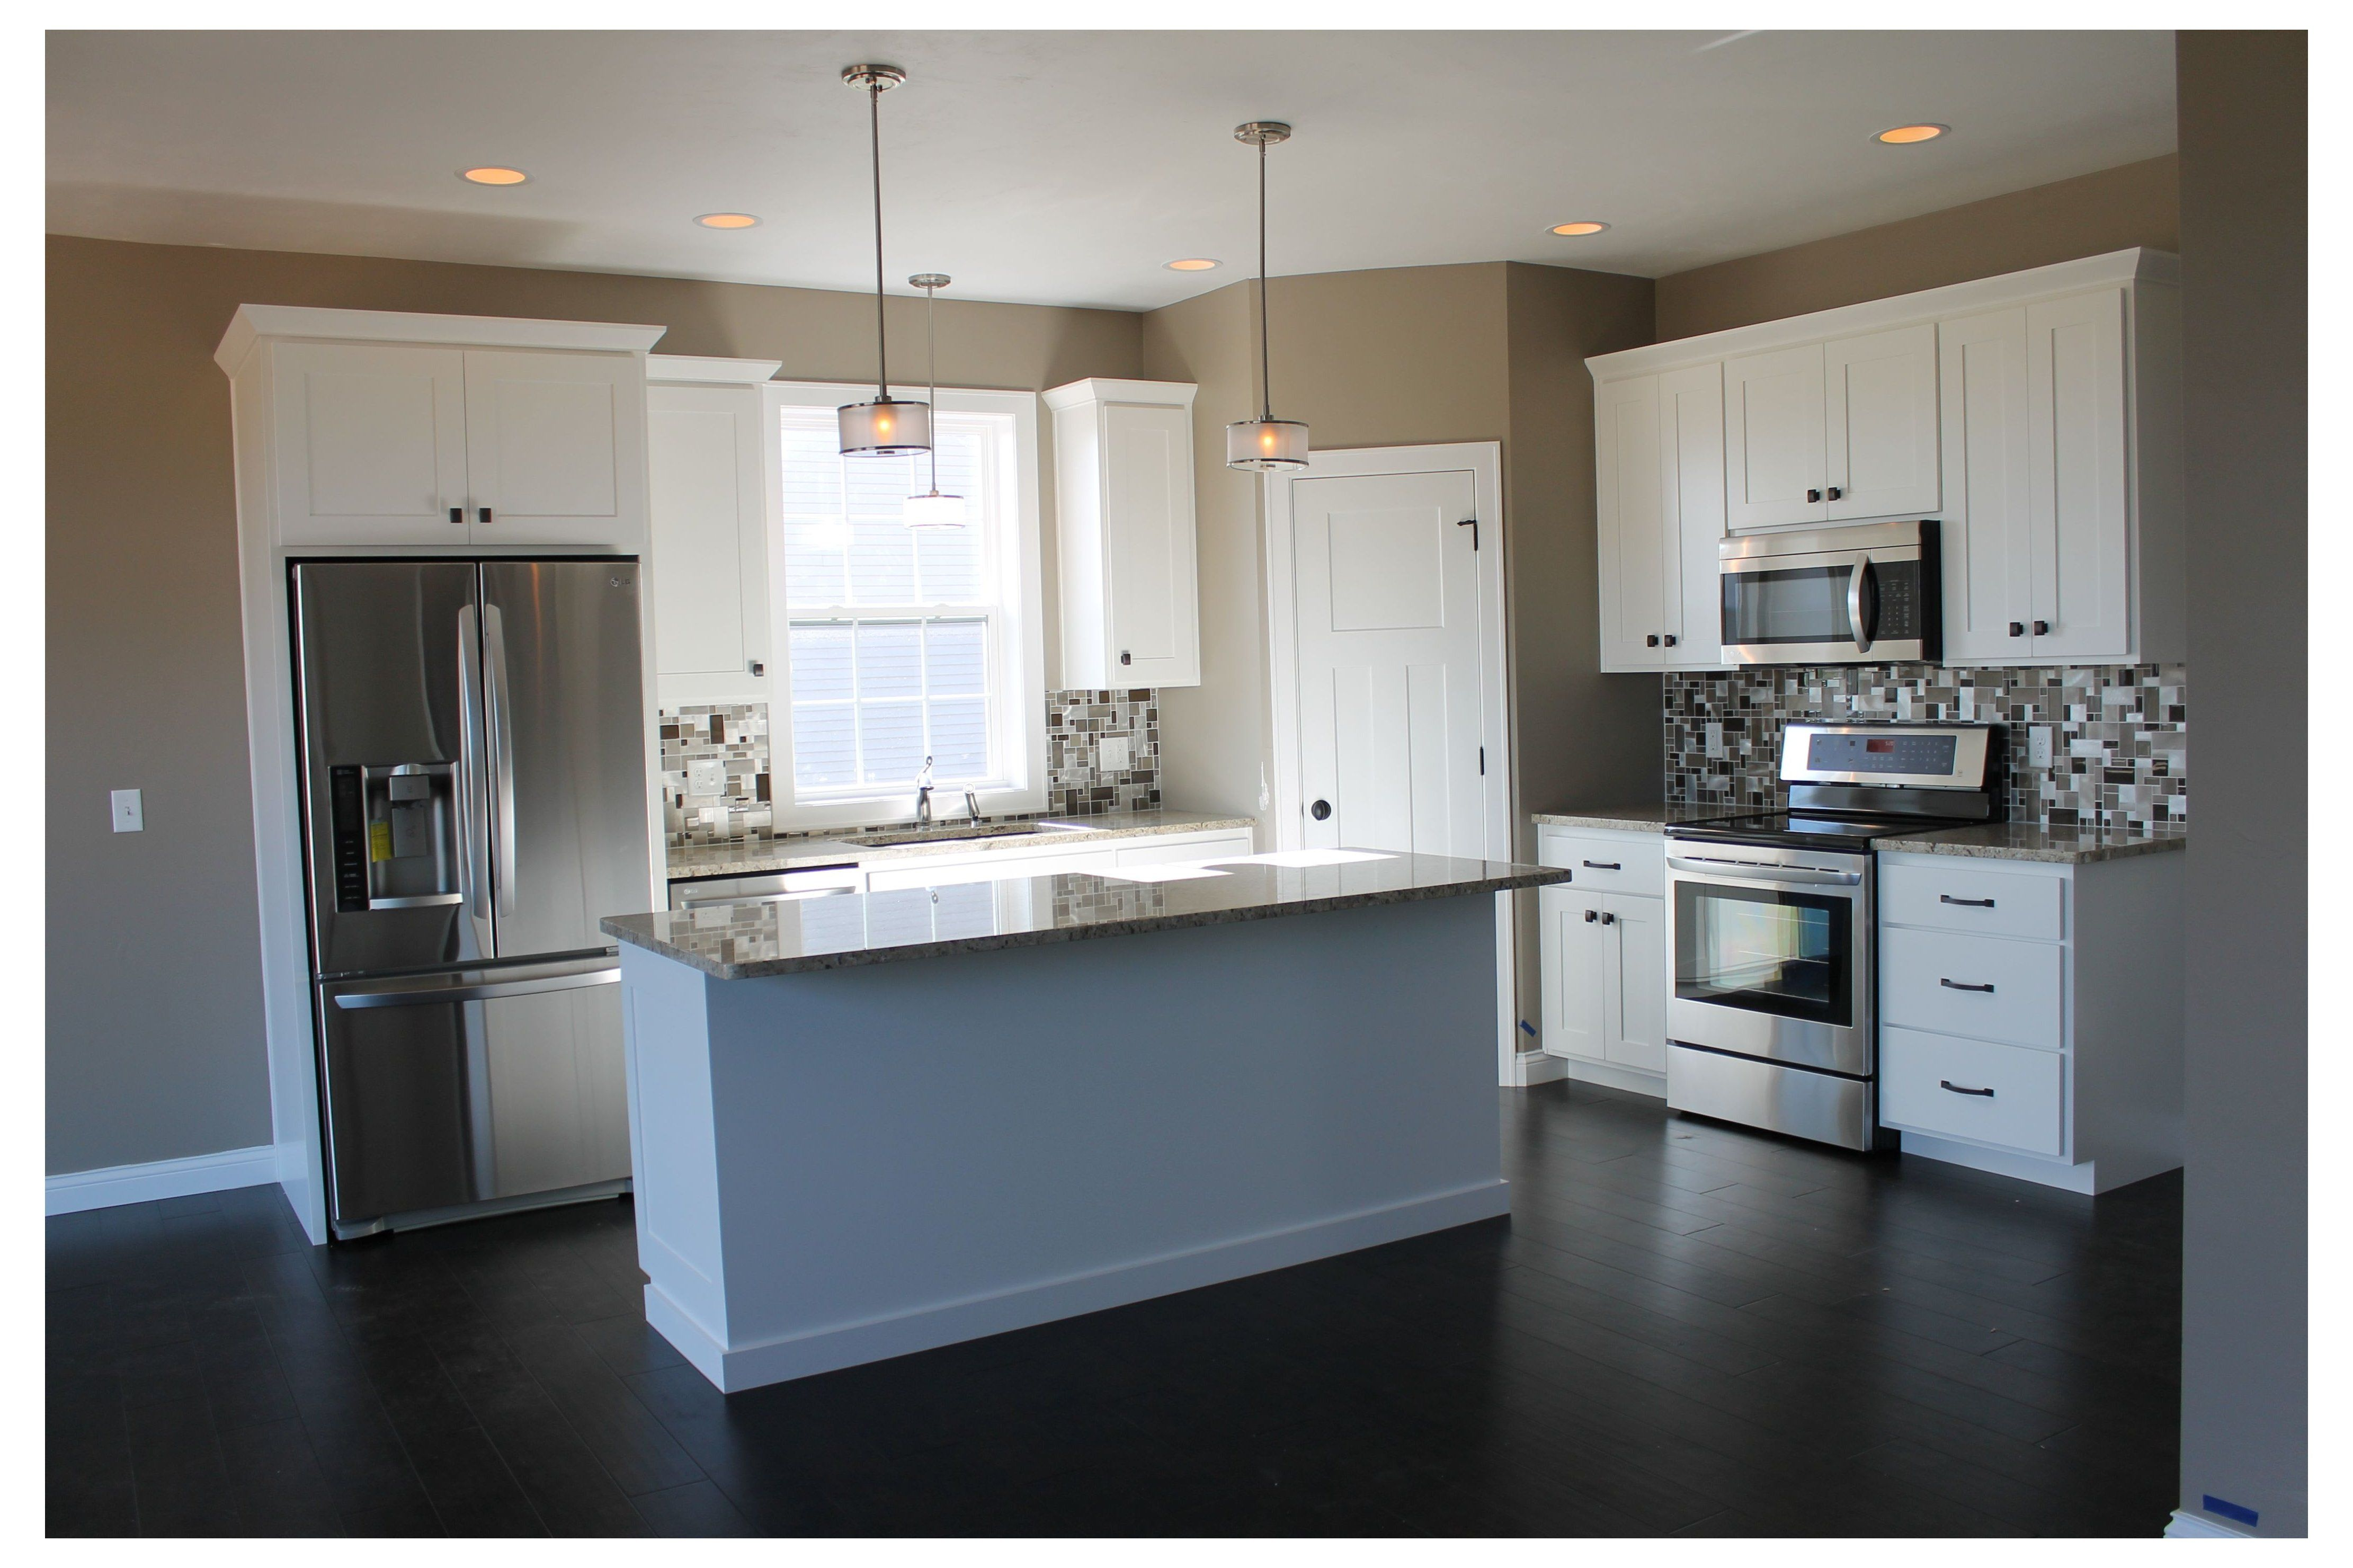 The Best Of White Cabinets L Shaped Kitchen With Corner Pantry 5322 White Kitchen With Large Small Kitchen Layouts Kitchen Layout L Shape Kitchen Layout